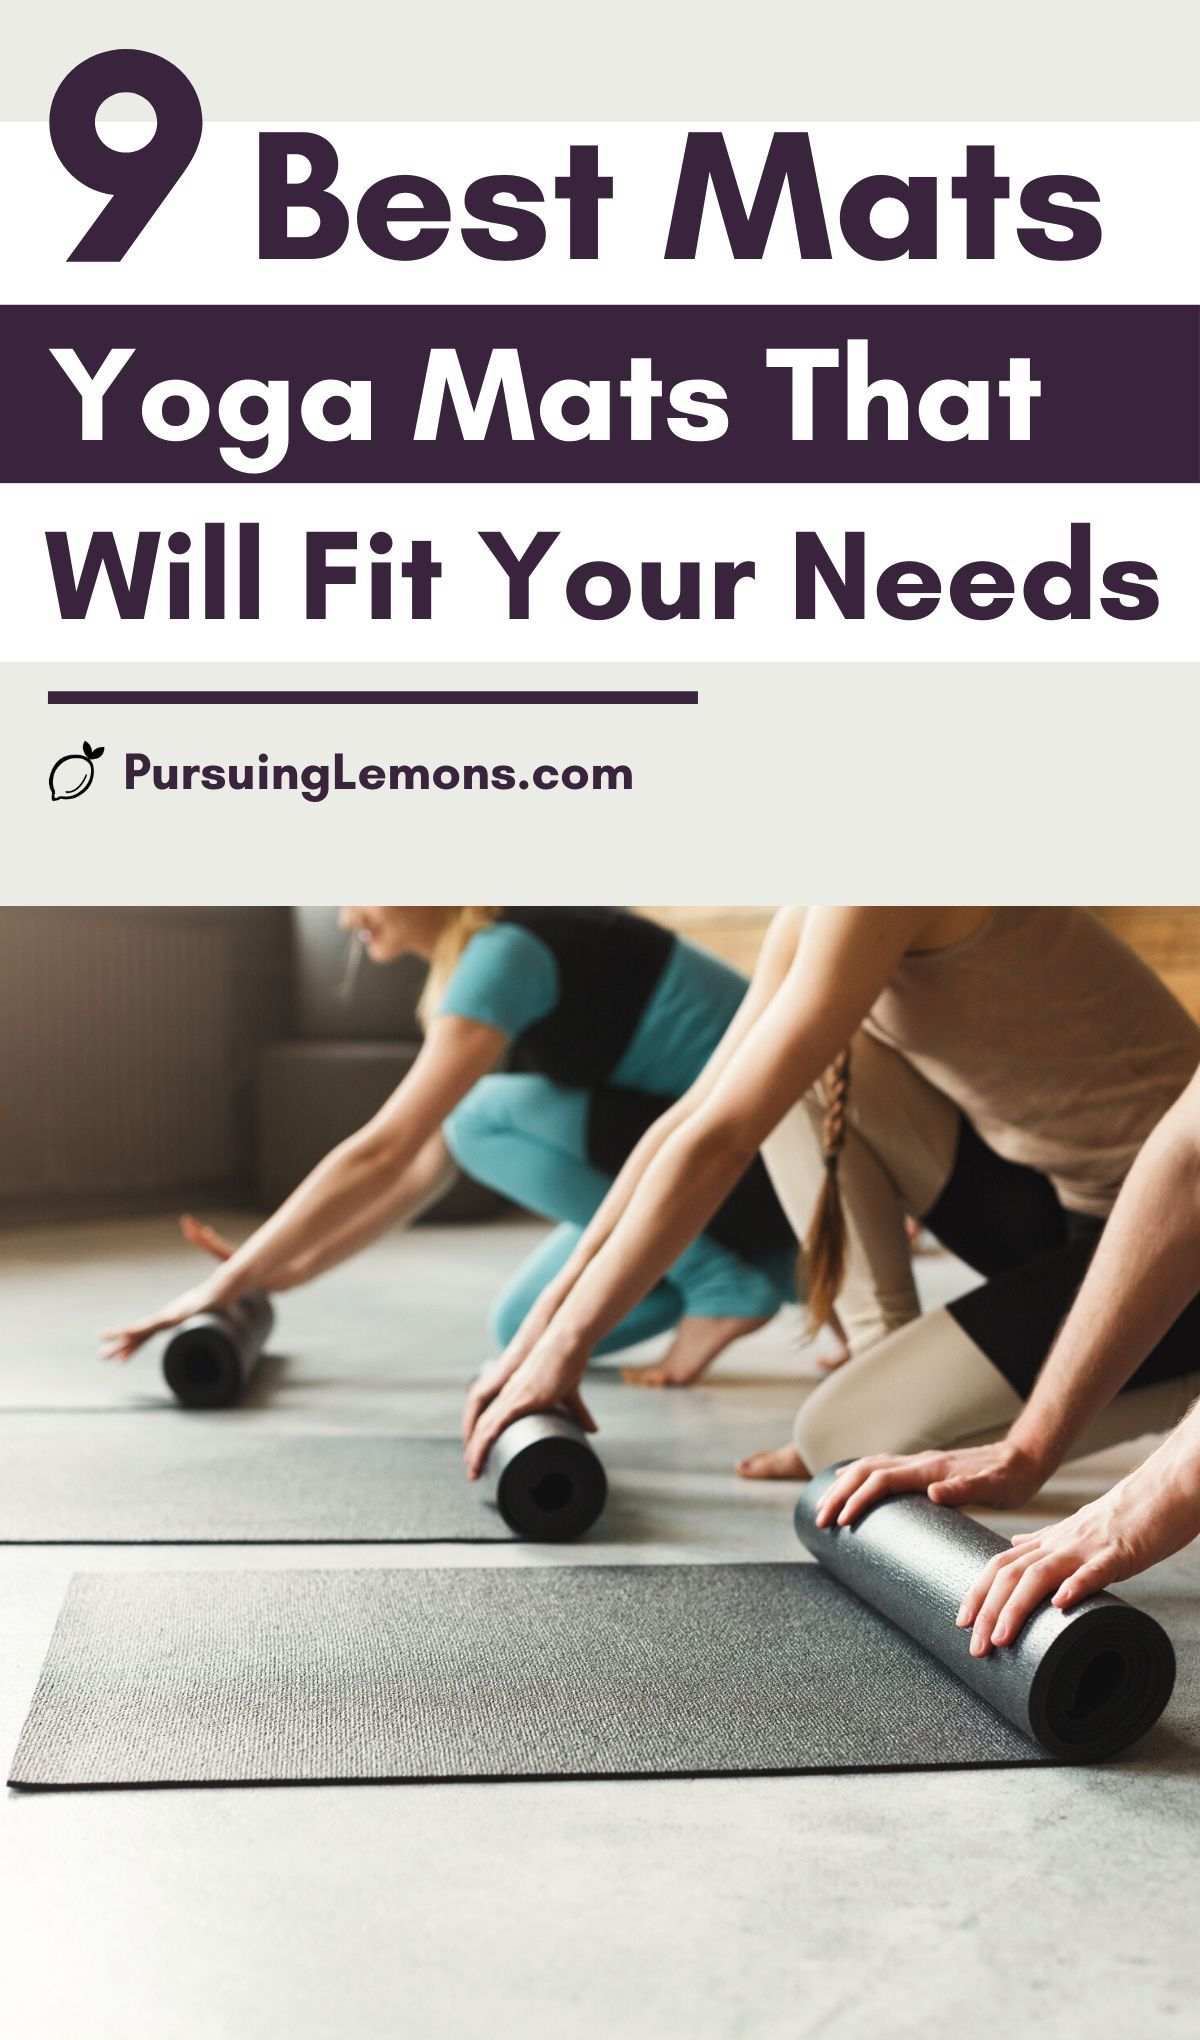 The 9 Best Yoga Mats That Will Fit Your Need   Not all yoga mats are created equal. There is the grippy mat, the thick yoga mat and some may be a thin yoga mat. They're just too many different yoga mats available. Our goal is to help you choose the perfect yoga mat! In our opinion, this is the 9 best yoga mats out there! #yoga #yogamat #mats #yogamats